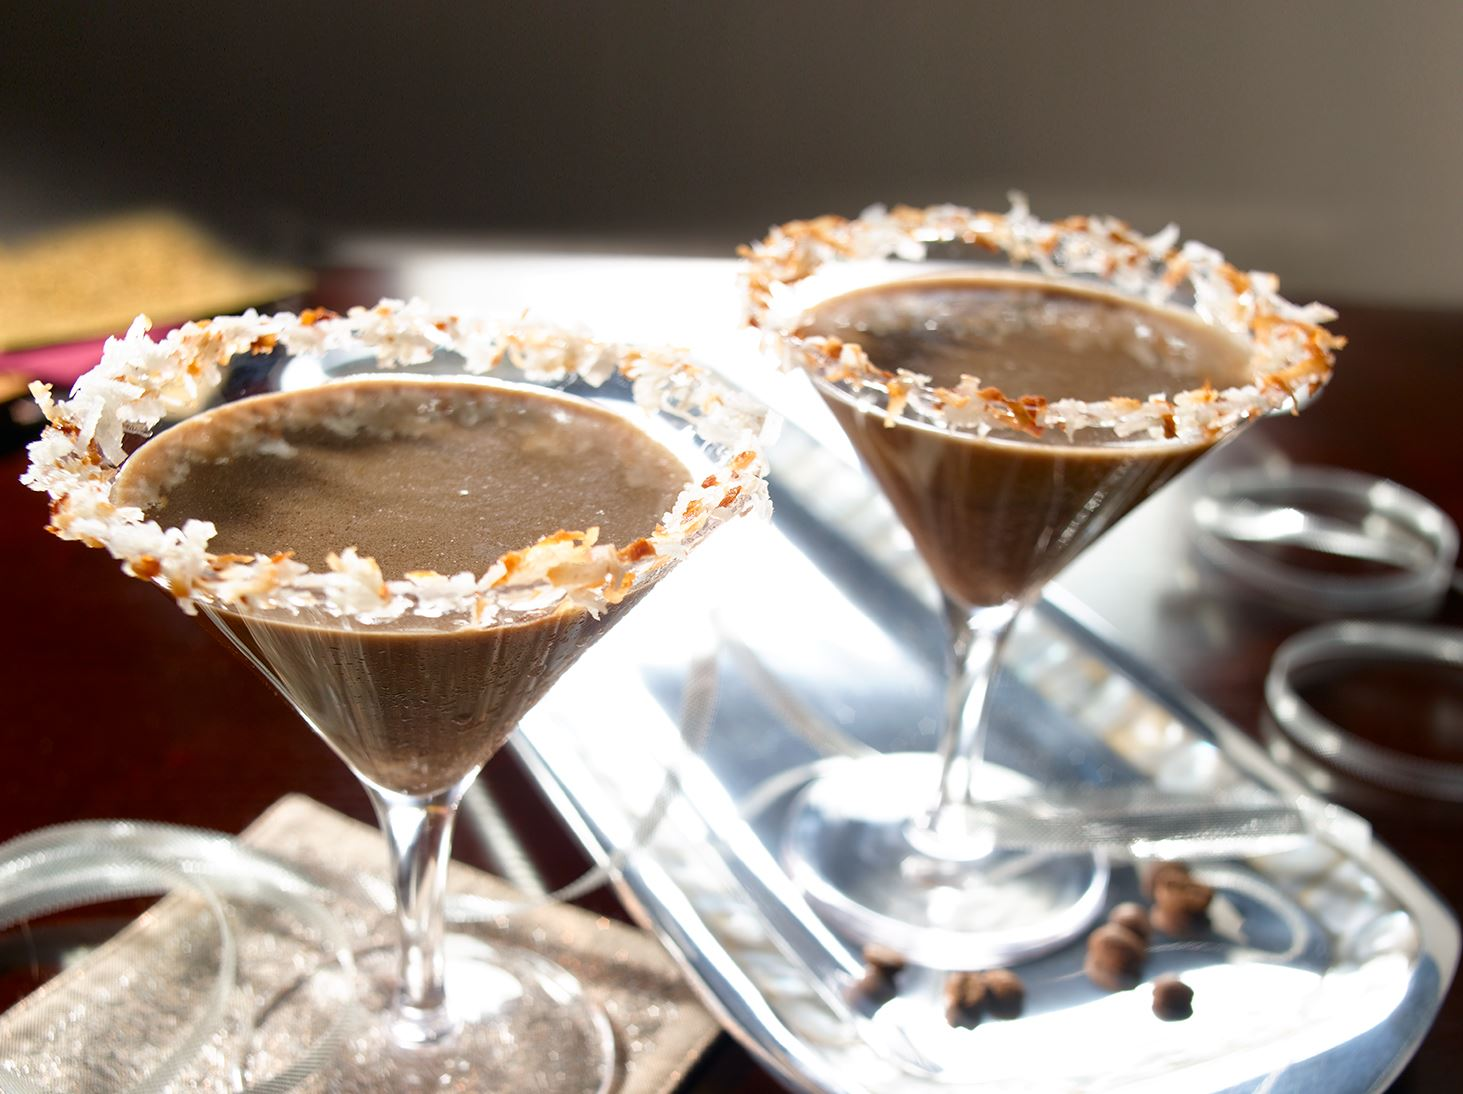 Martini de Coco y Chocolate